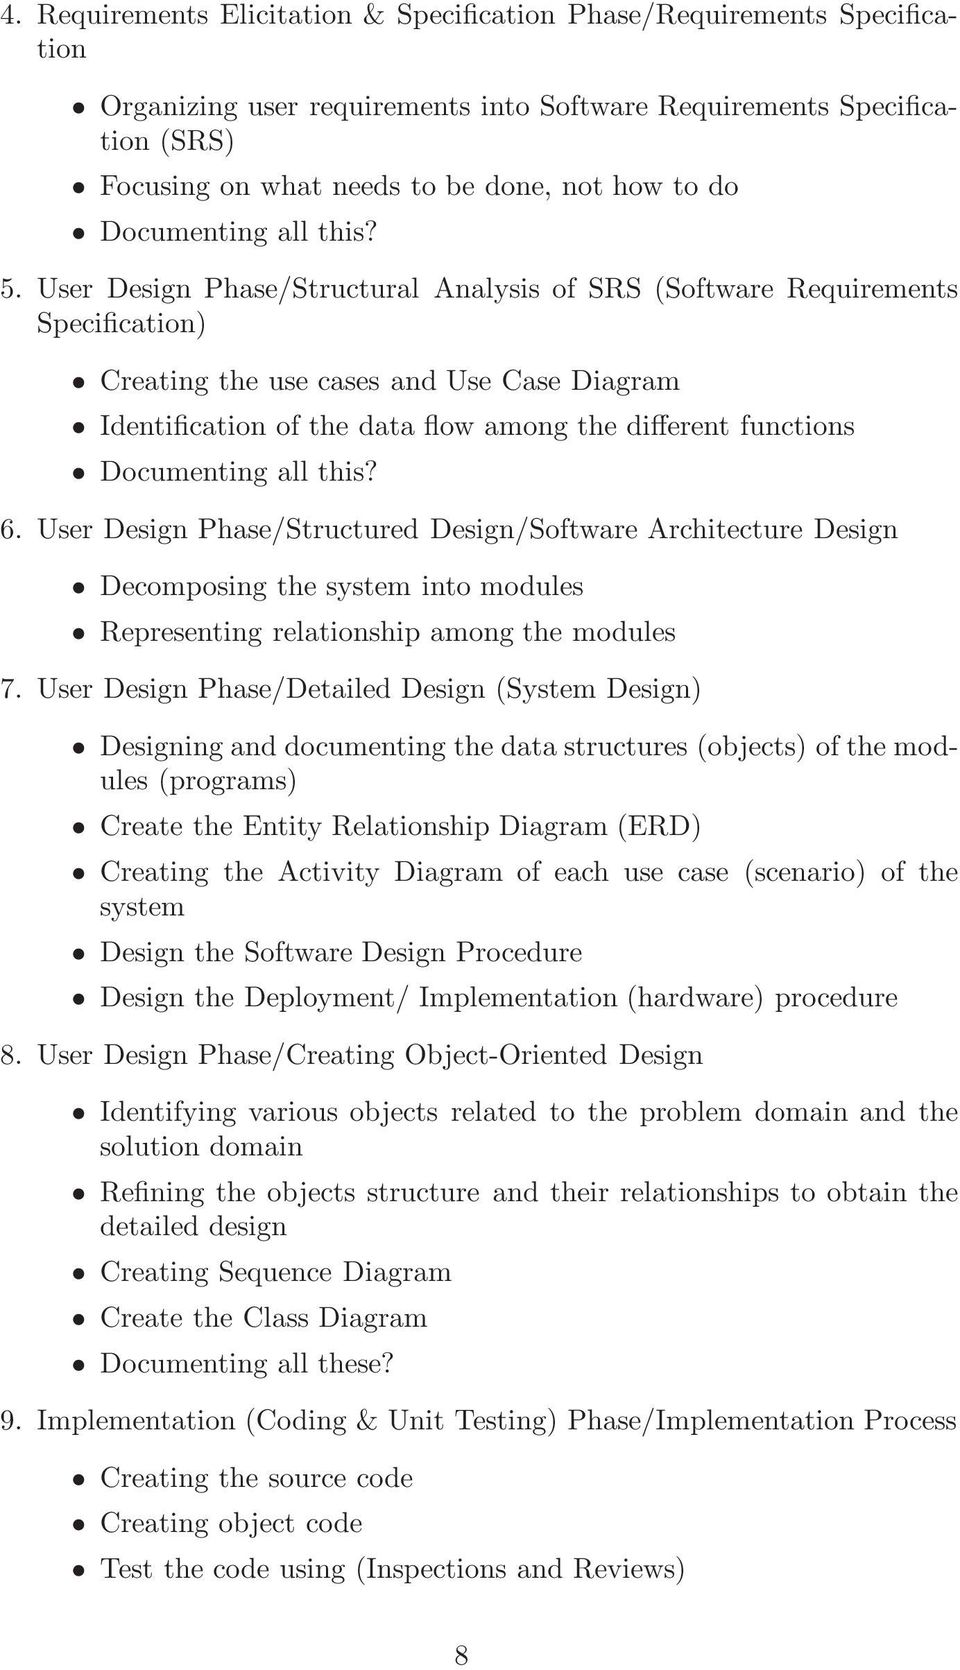 User Design Phase/Structural Analysis of SRS (Software Requirements Specification) Creating the use cases and Use Case Diagram Identification of the data flow among the different functions